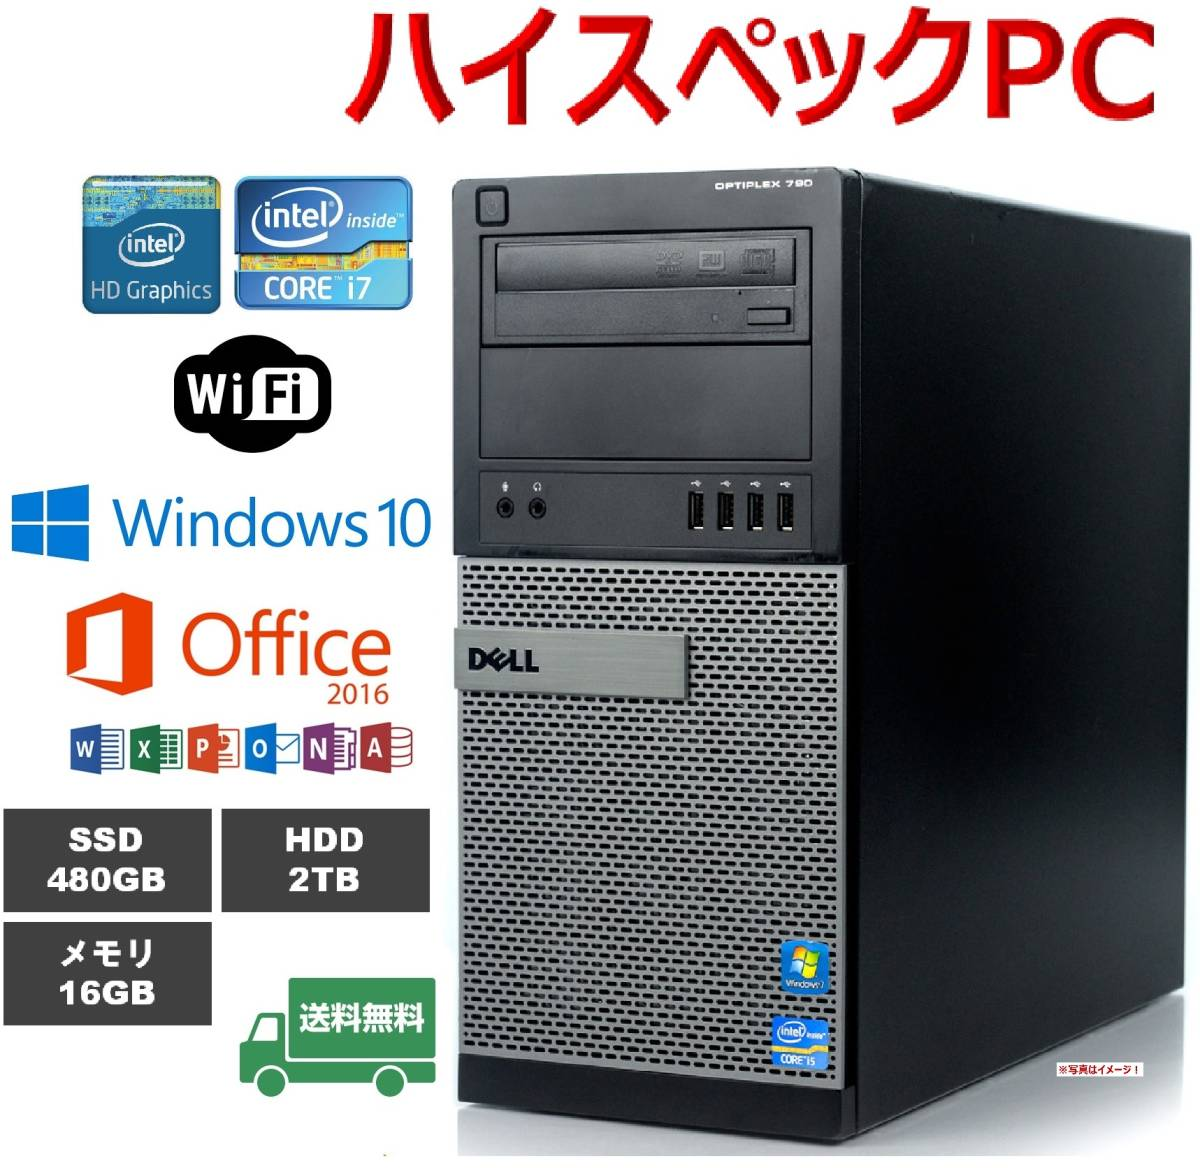 ★超高速 Intel Core i7 3.8GHz x 8★新品SSD480GB★HDD2TB★メモリ16GB★無線LAN★静音★最新Win10★Office 2016★OptiPlex 790 MT改★